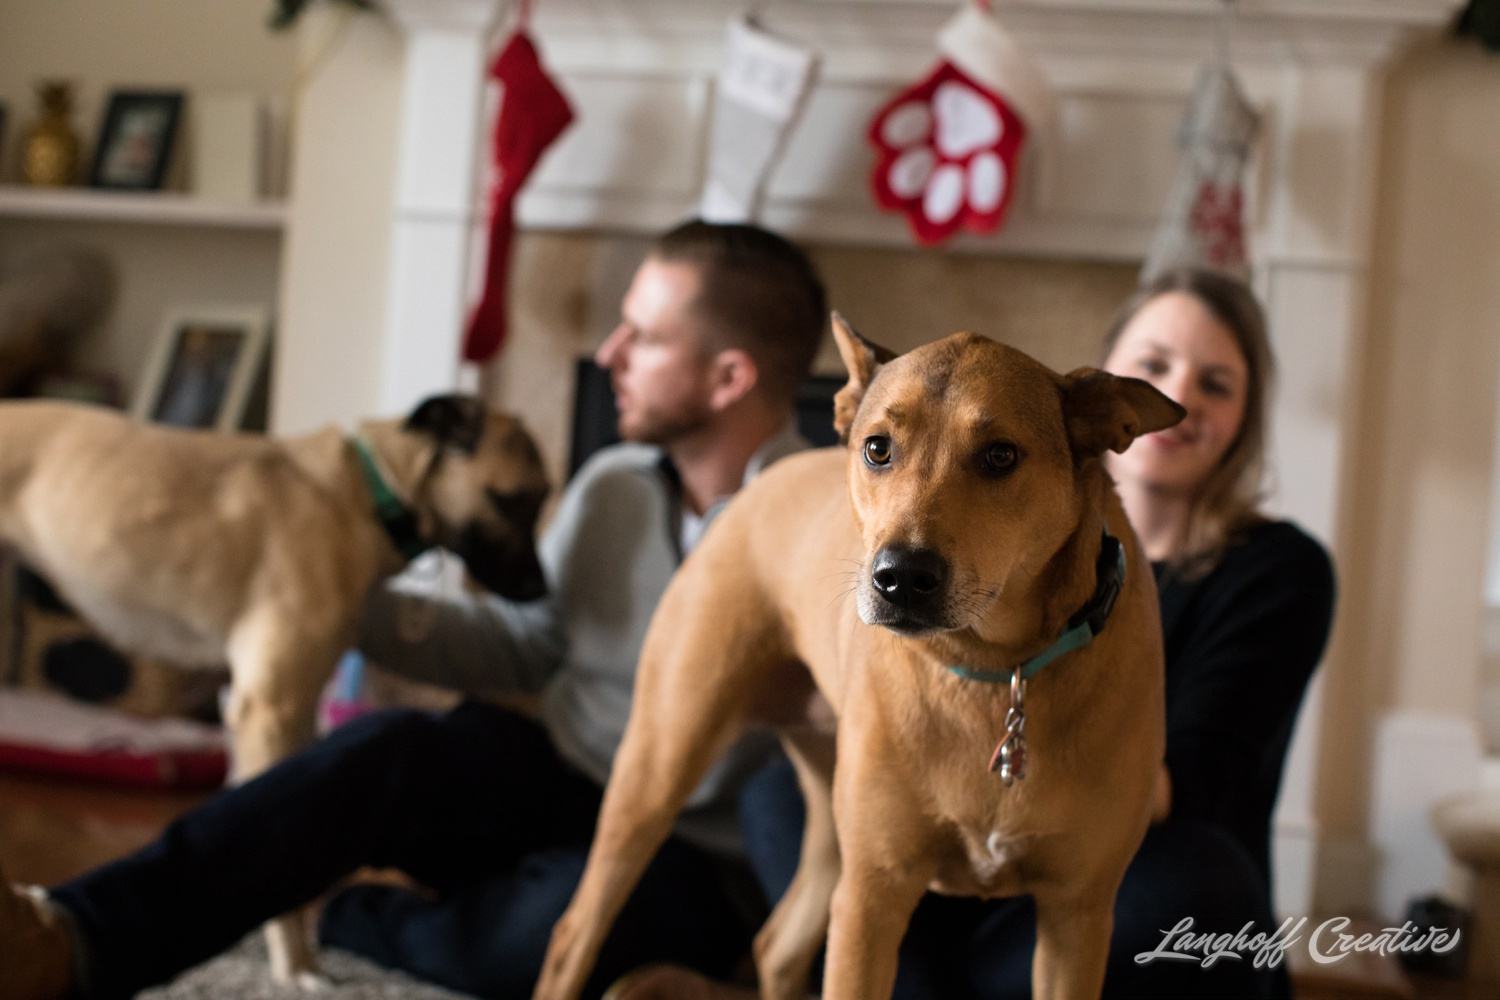 20171118-ByrdChristmas-Dogs-Holidays-LanghoffCreative-RealLifeSession-DocumentaryFamilyPhotography-RDUphotographer-15-photo.jpg